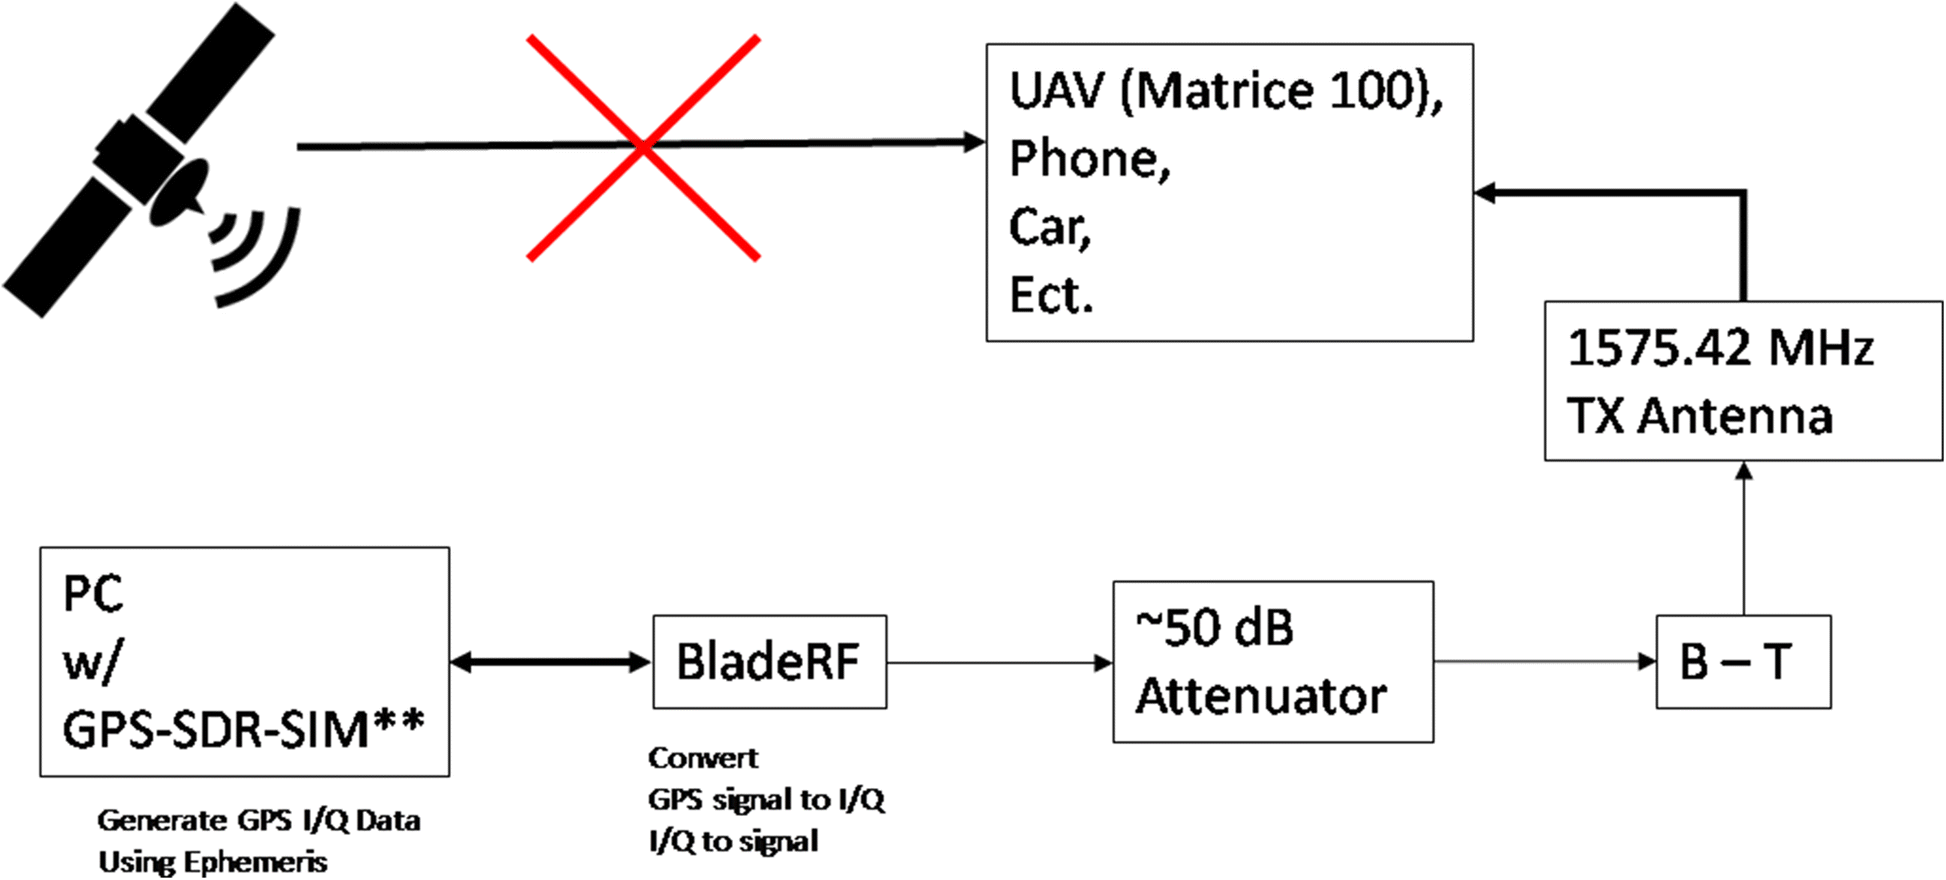 Development of a GPS spoofing apparatus to attack a DJI